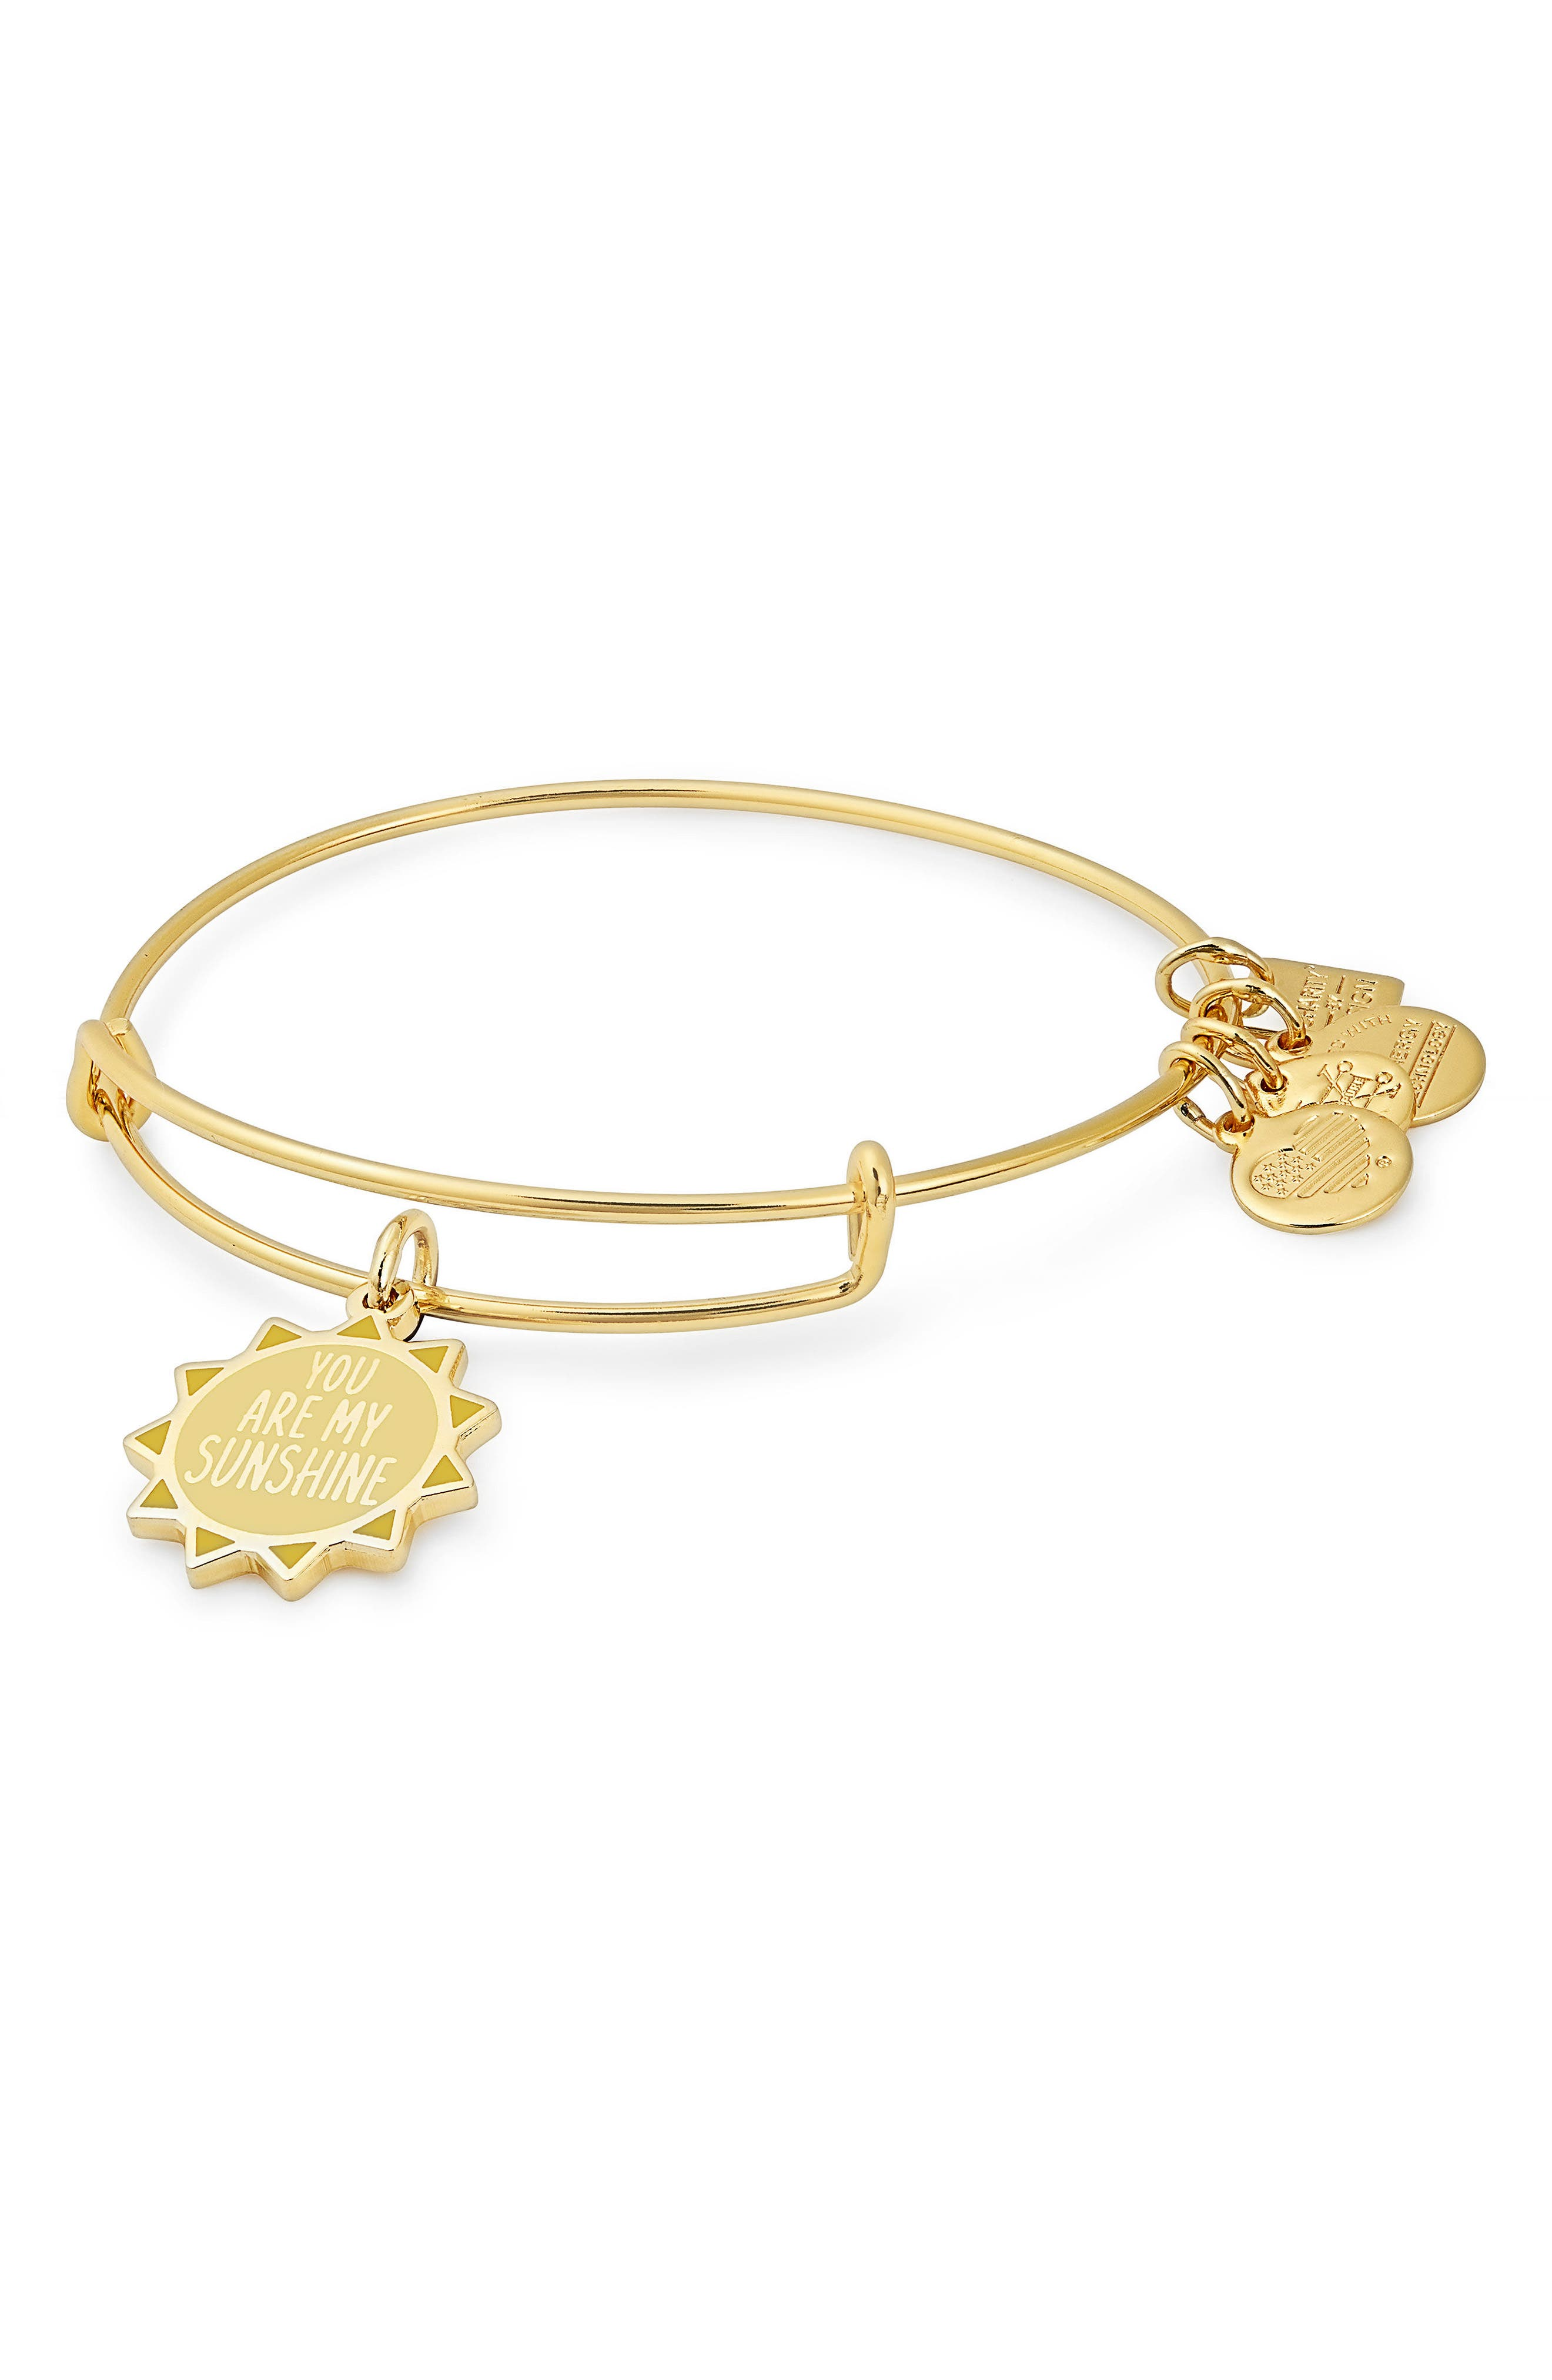 Main Image - Alex and Ani Charity by Design You Are My Sunshine Charm Bracelet